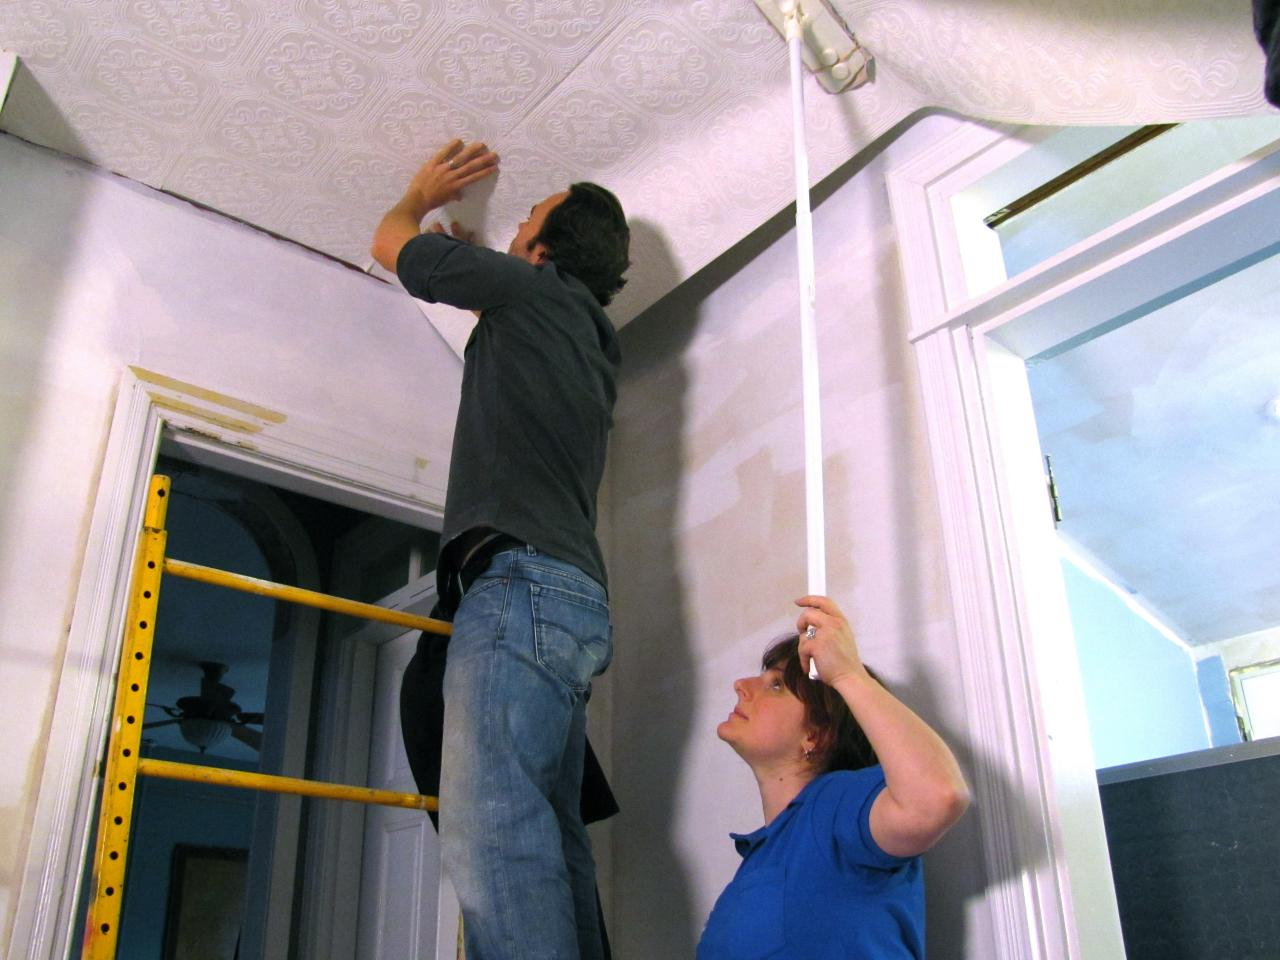 how to hang wallpaper on a ceiling | how-tos | diy